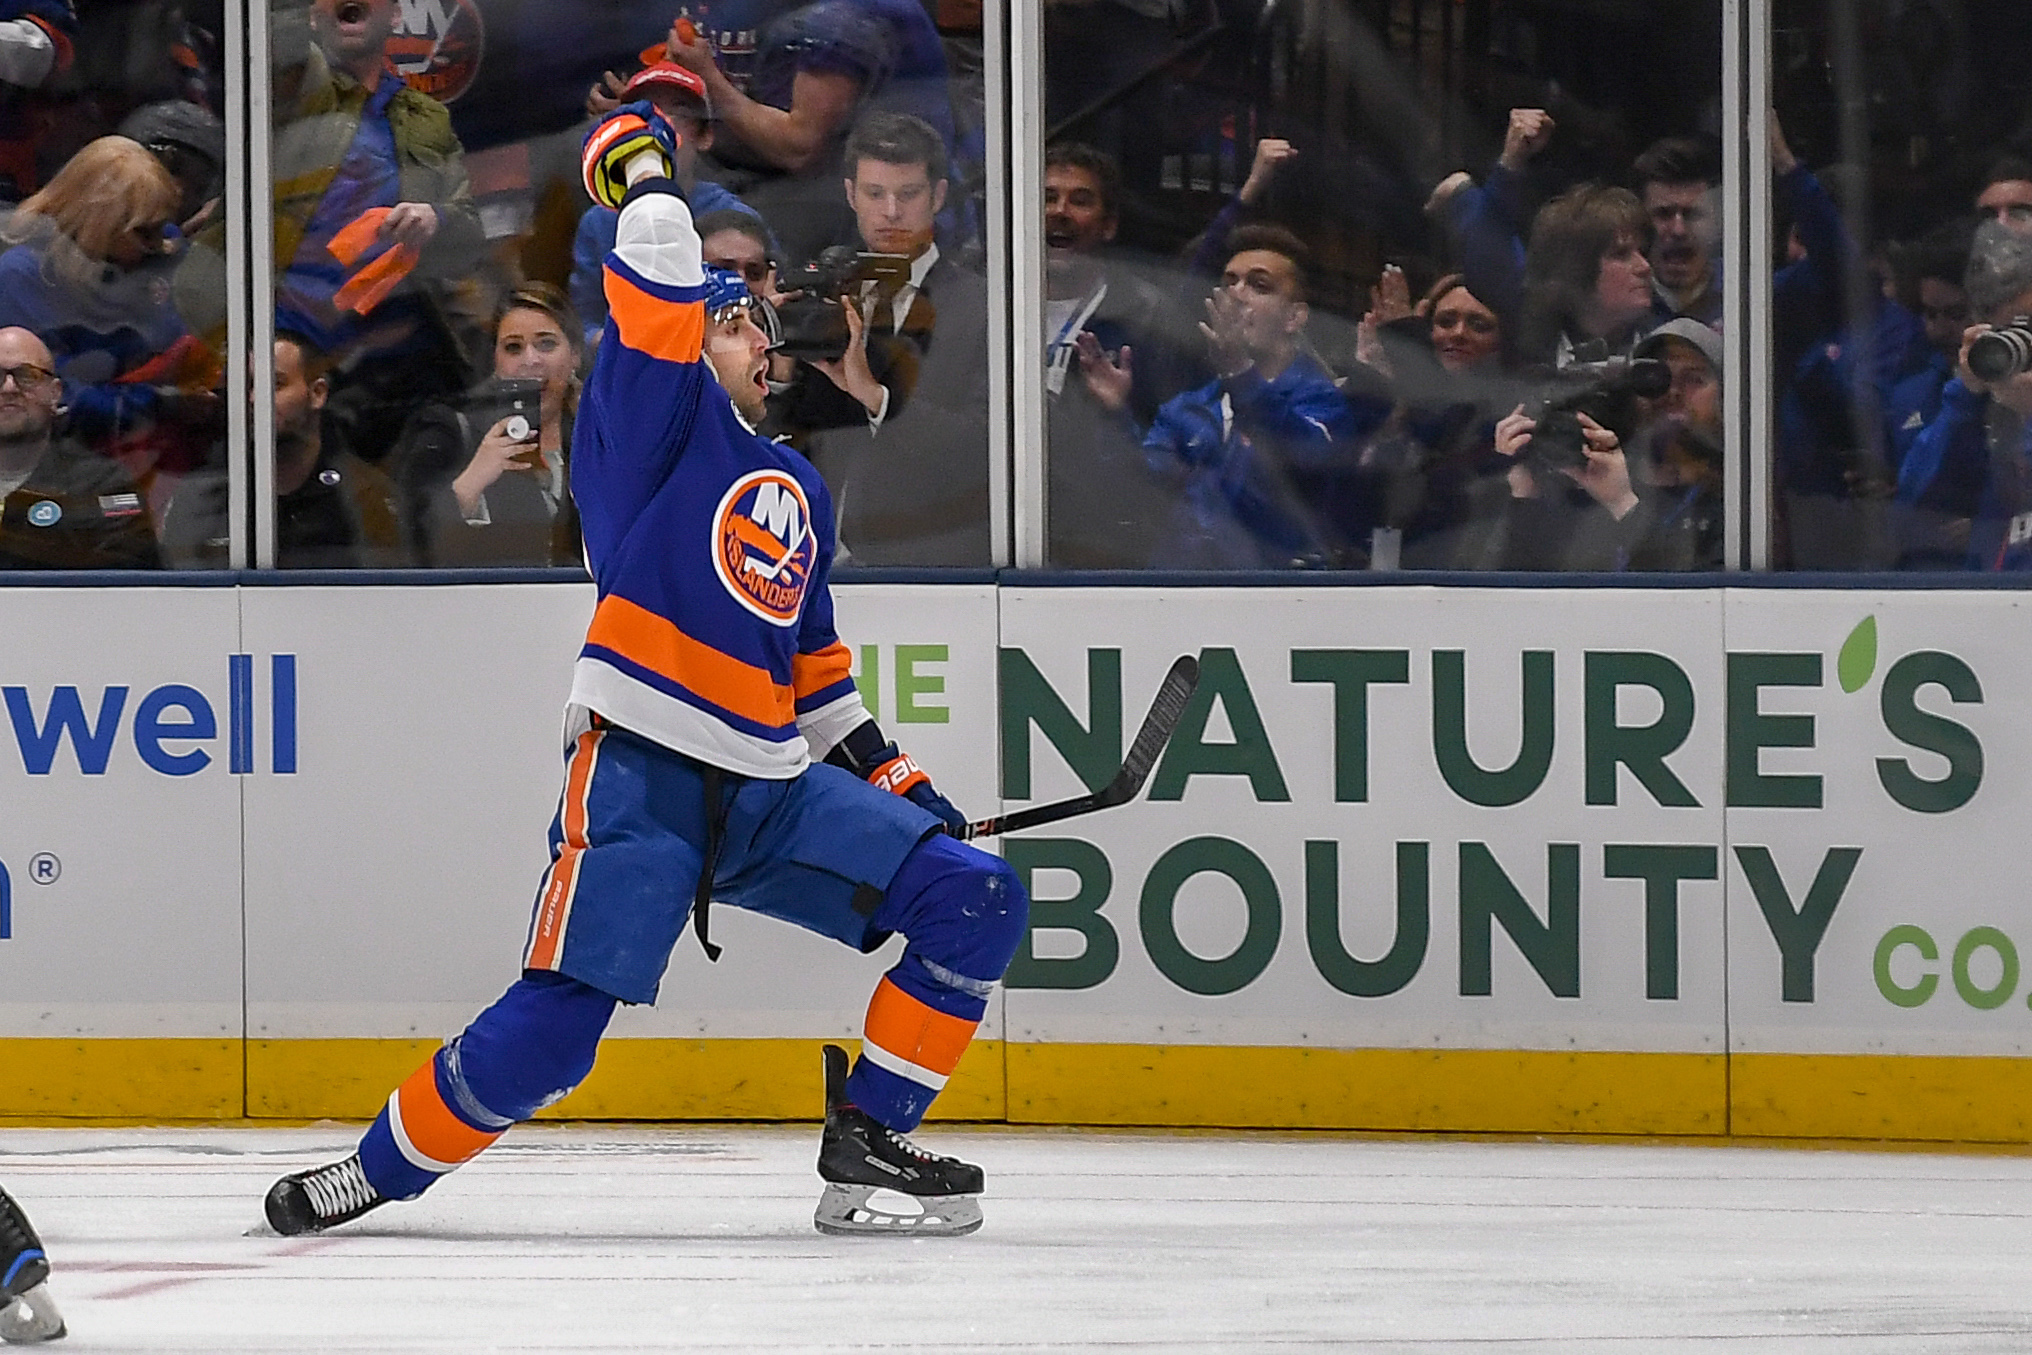 Apr 10, 2019; Brooklyn, NY, USA; New York Islanders right wing Jordan Eberle (7) celebrates his goal against the Pittsburgh Penguins during the first period in game one of the first round of the 2019 Stanley Cup Playoffs at Barclays Center. Mandatory Credit: Dennis Schneidler-USA TODAY Sports